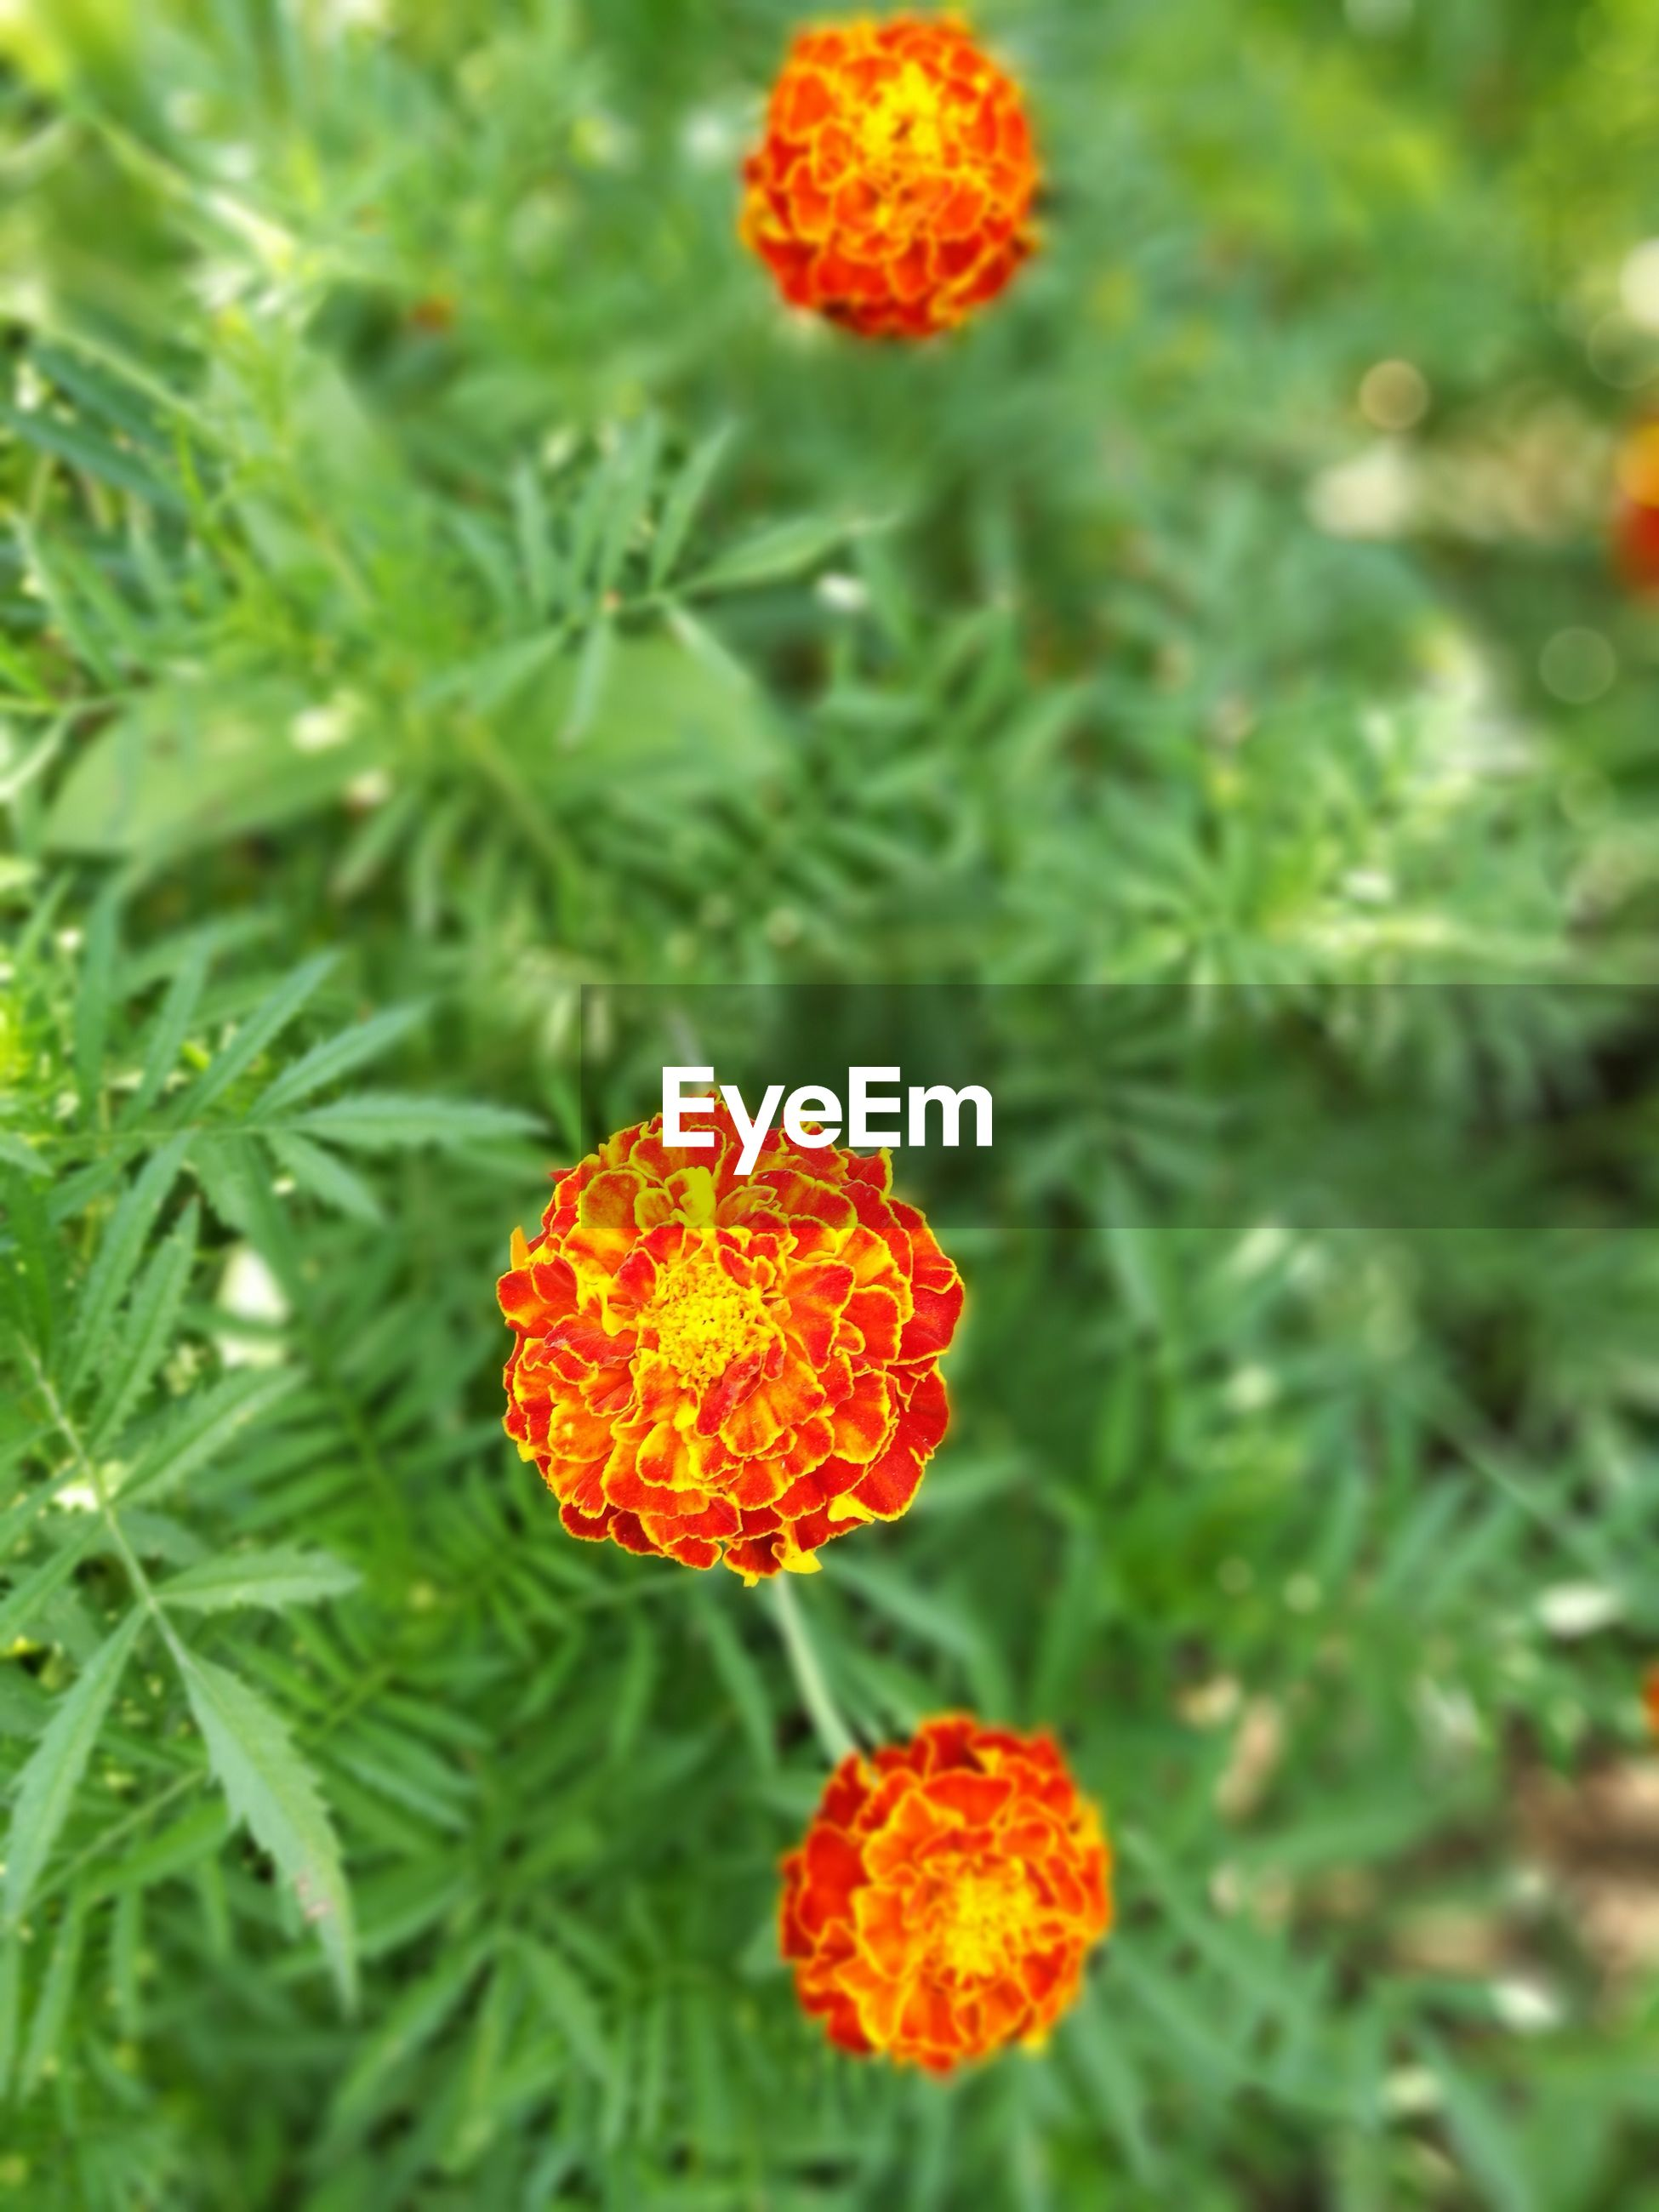 flower, growth, nature, beauty in nature, freshness, plant, flower head, orange color, fragility, petal, no people, outdoors, day, green color, blooming, focus on foreground, marigold, close-up, lantana camara